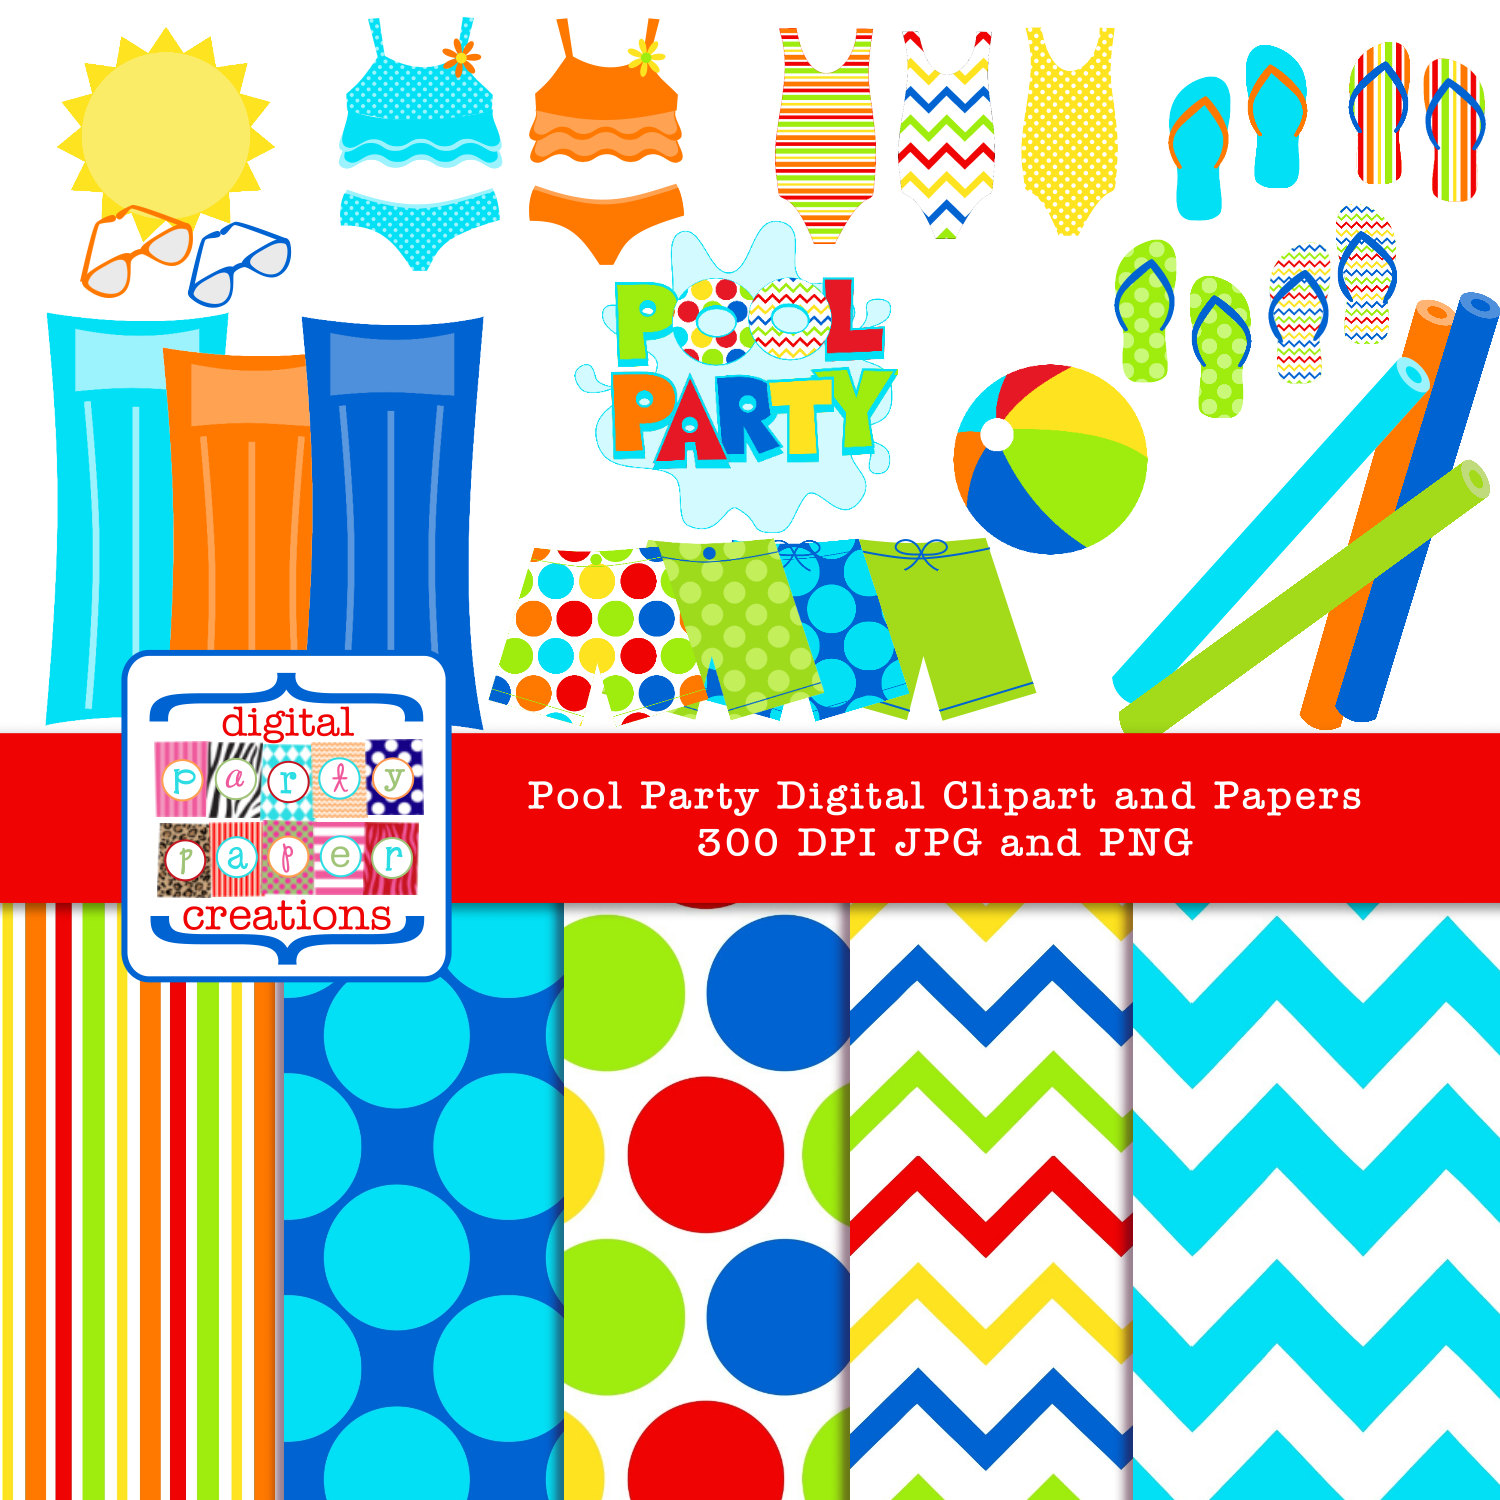 Floating clipart pool toy Pool clipart DOWNLOAD Graphic Art